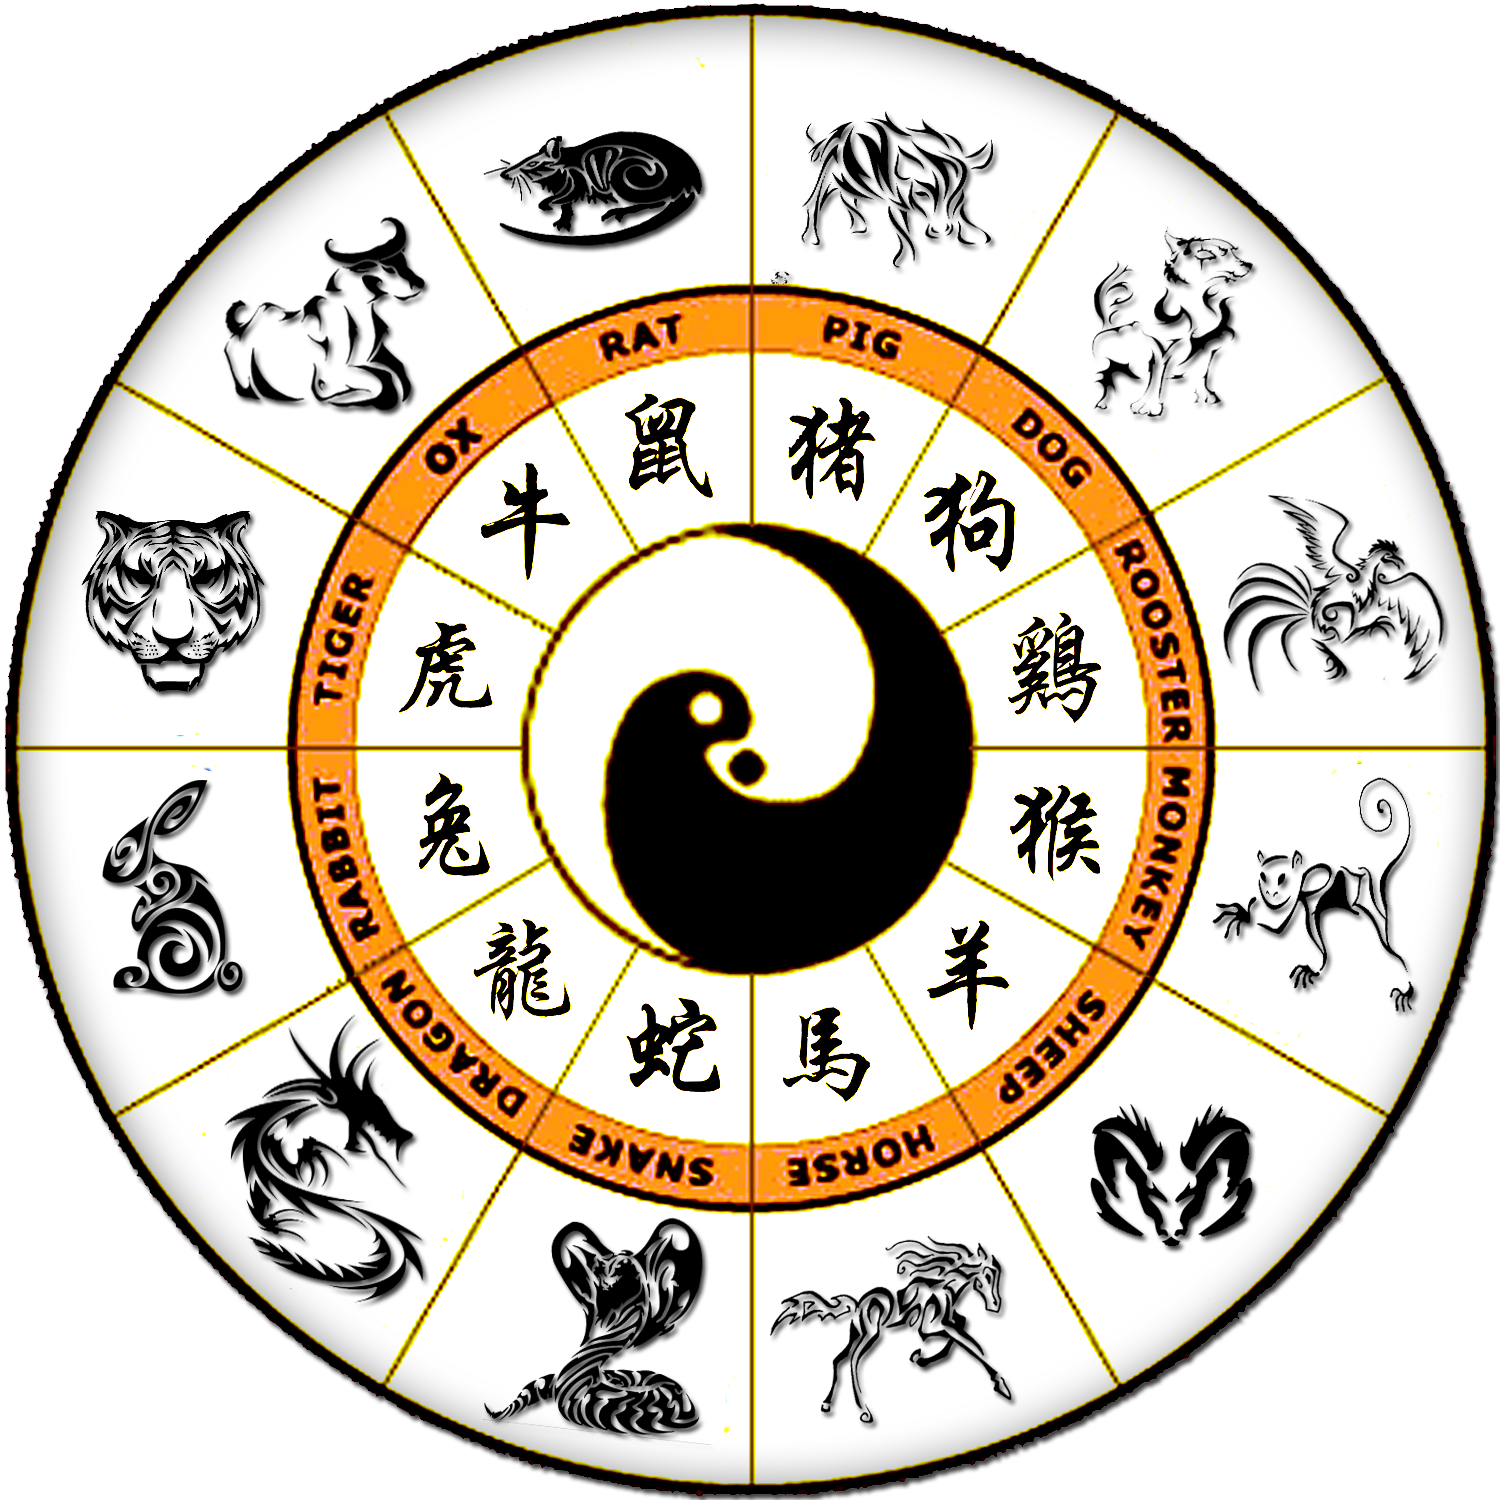 Chinese Zodiac Animal Of The Year Calculated By The Lunar Calendar